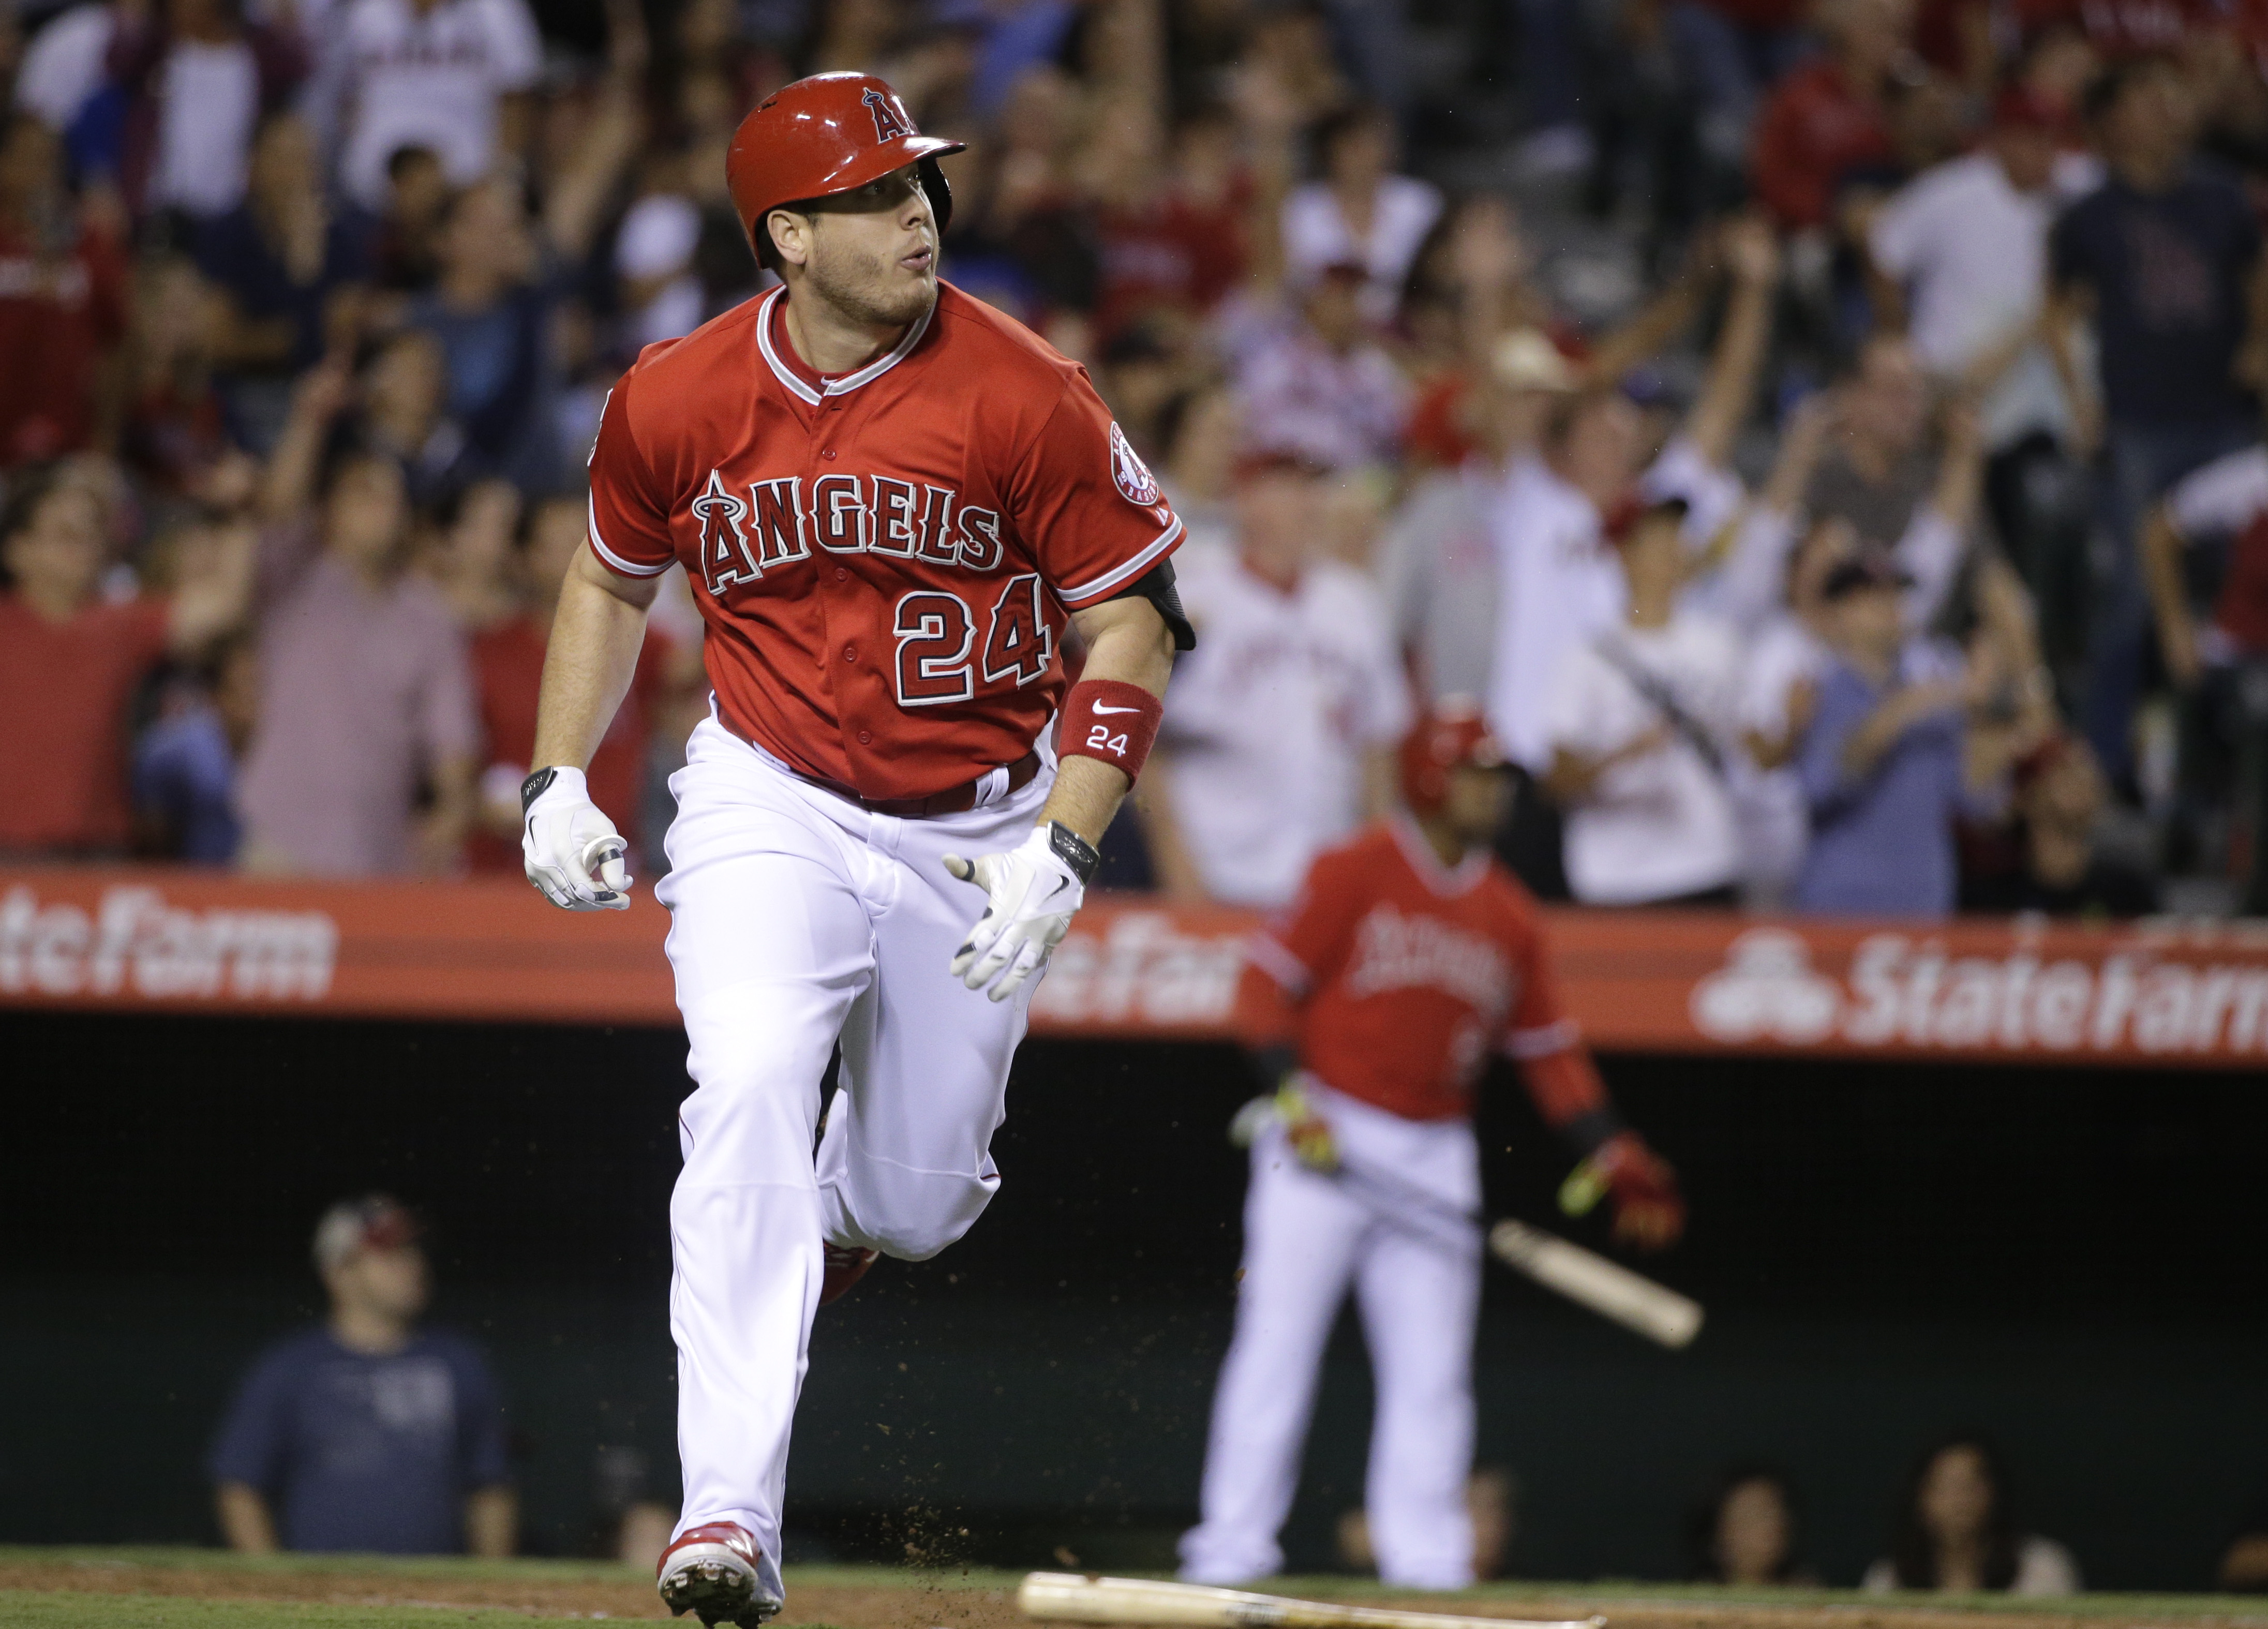 Los Angeles Angels' C.J. Cron watches his two-run double during the seventh inning of a baseball game against the Texas Rangers, Friday, Sept. 4, 2015, in Anaheim, Calif. (AP Photo/Jae C. Hong)